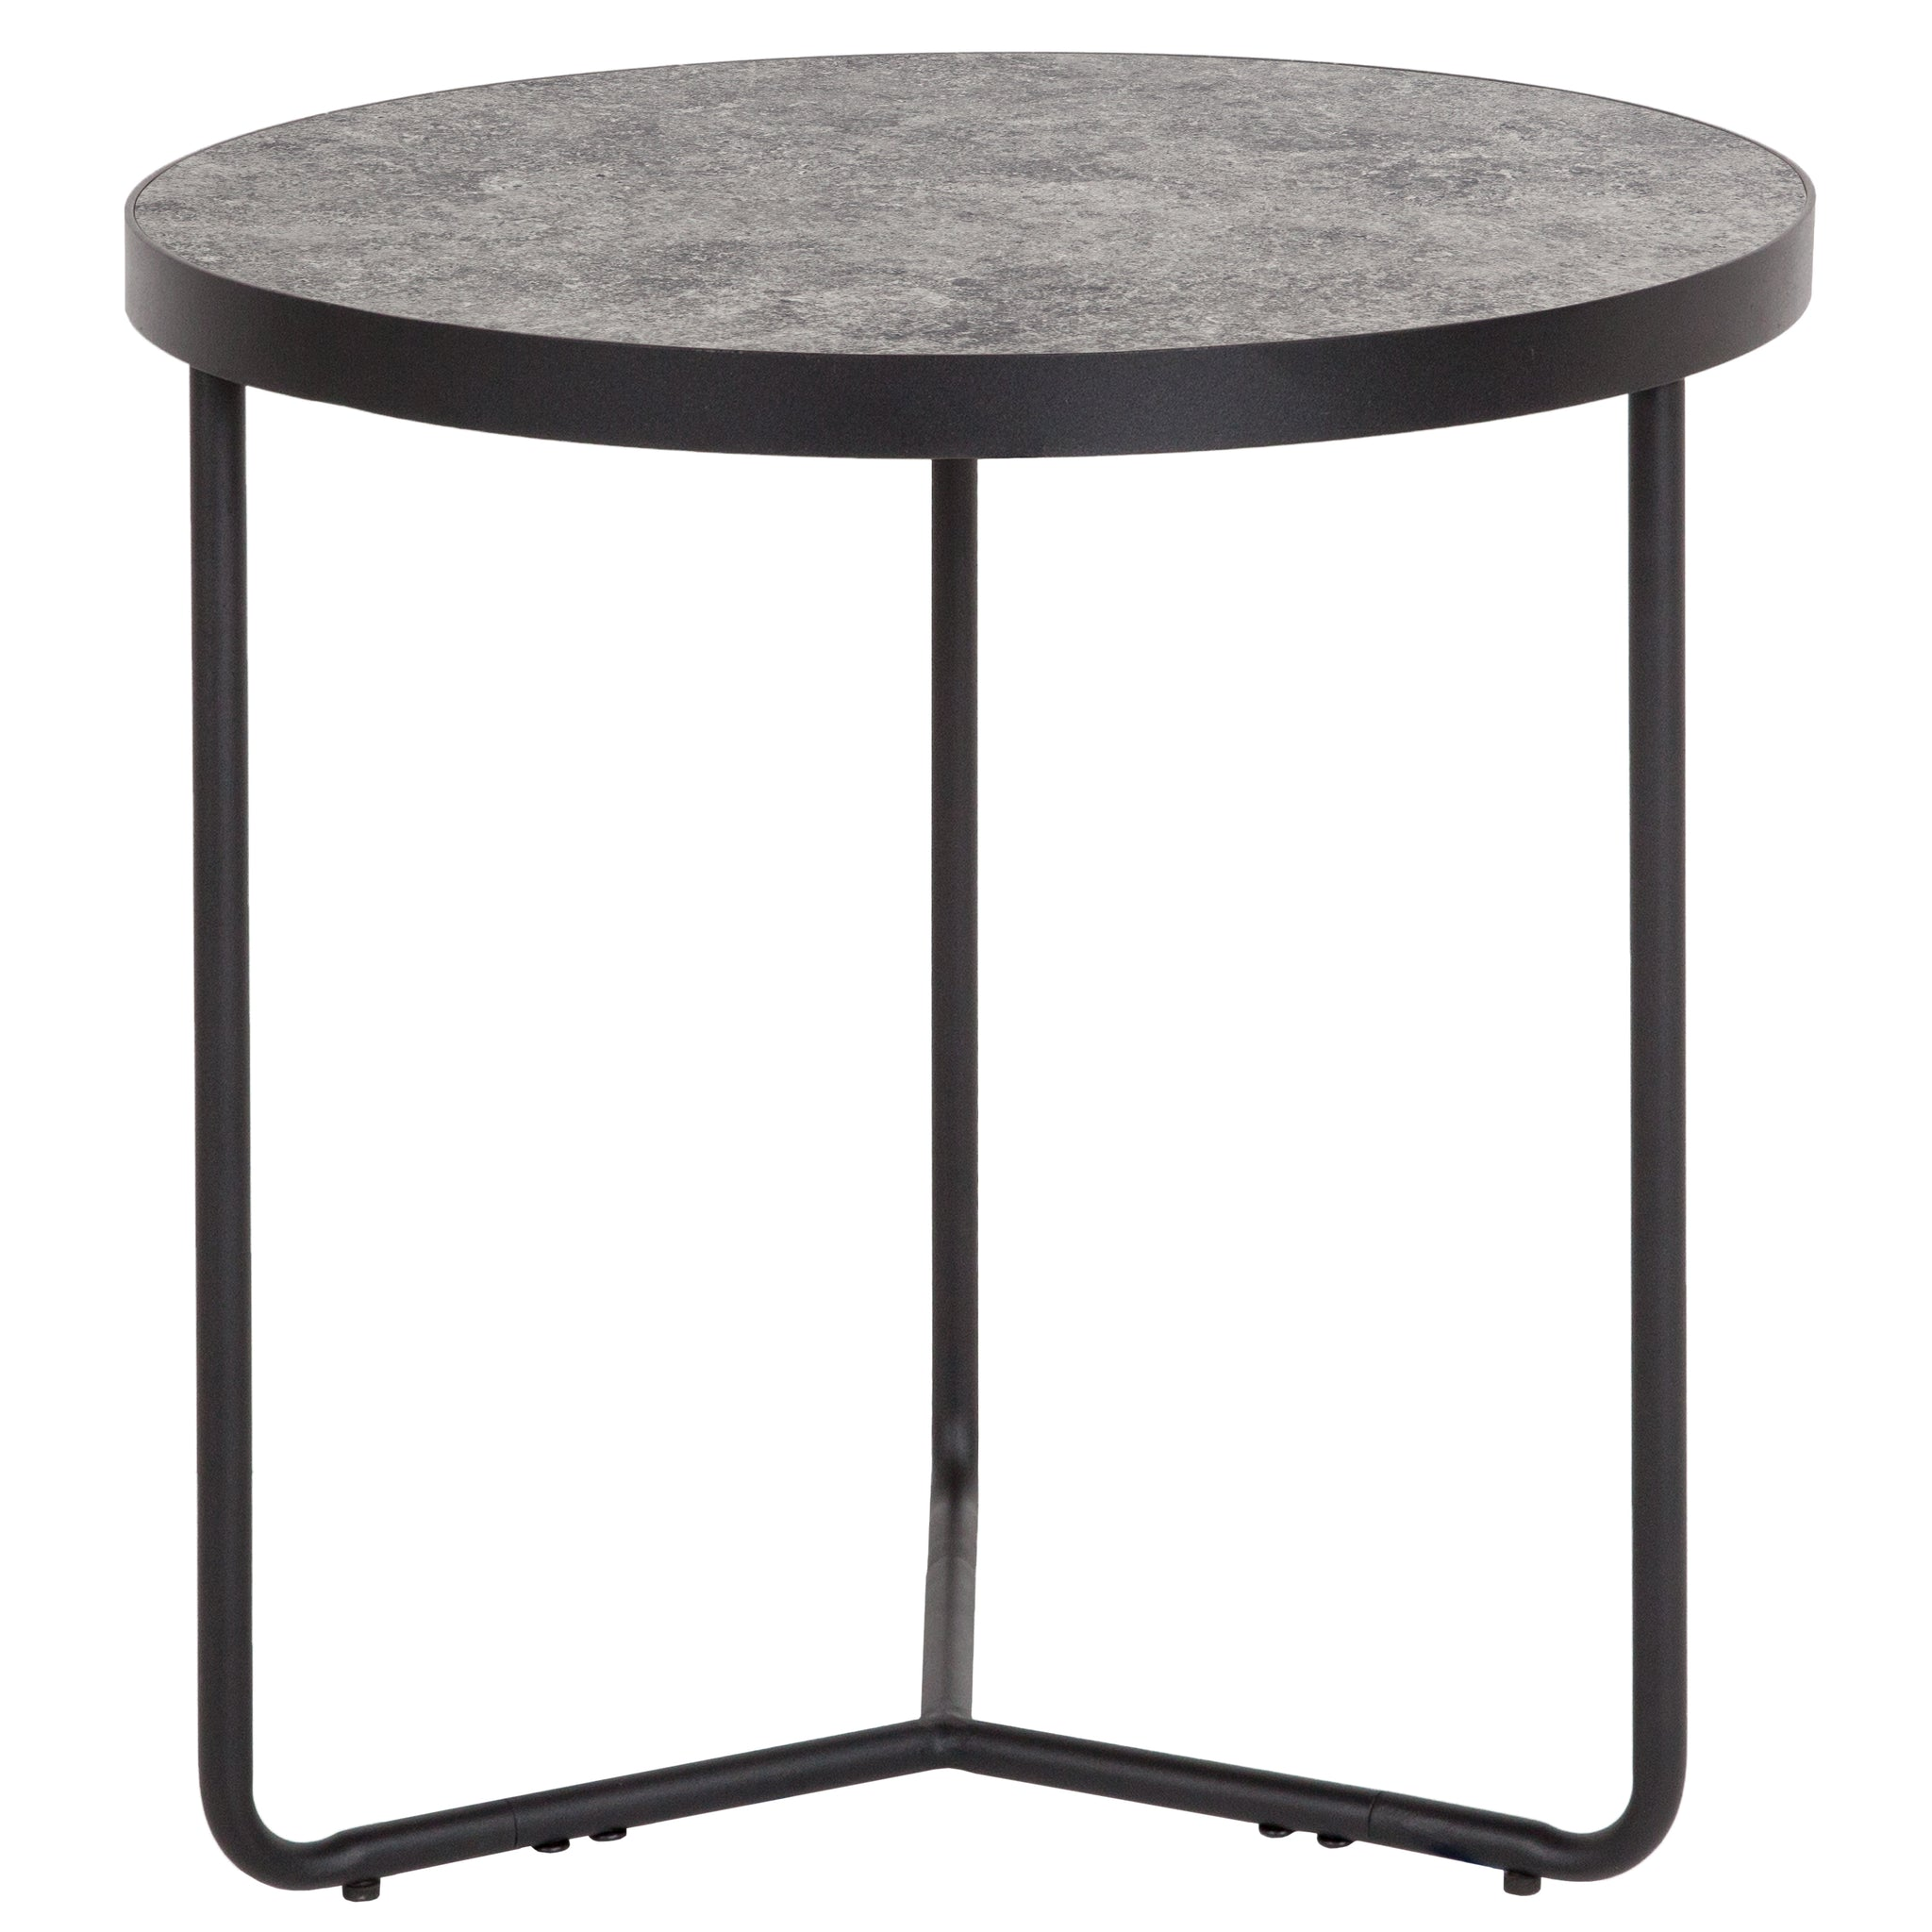 "Providence Collection 19.5"" Round End Table in Concrete Finish"